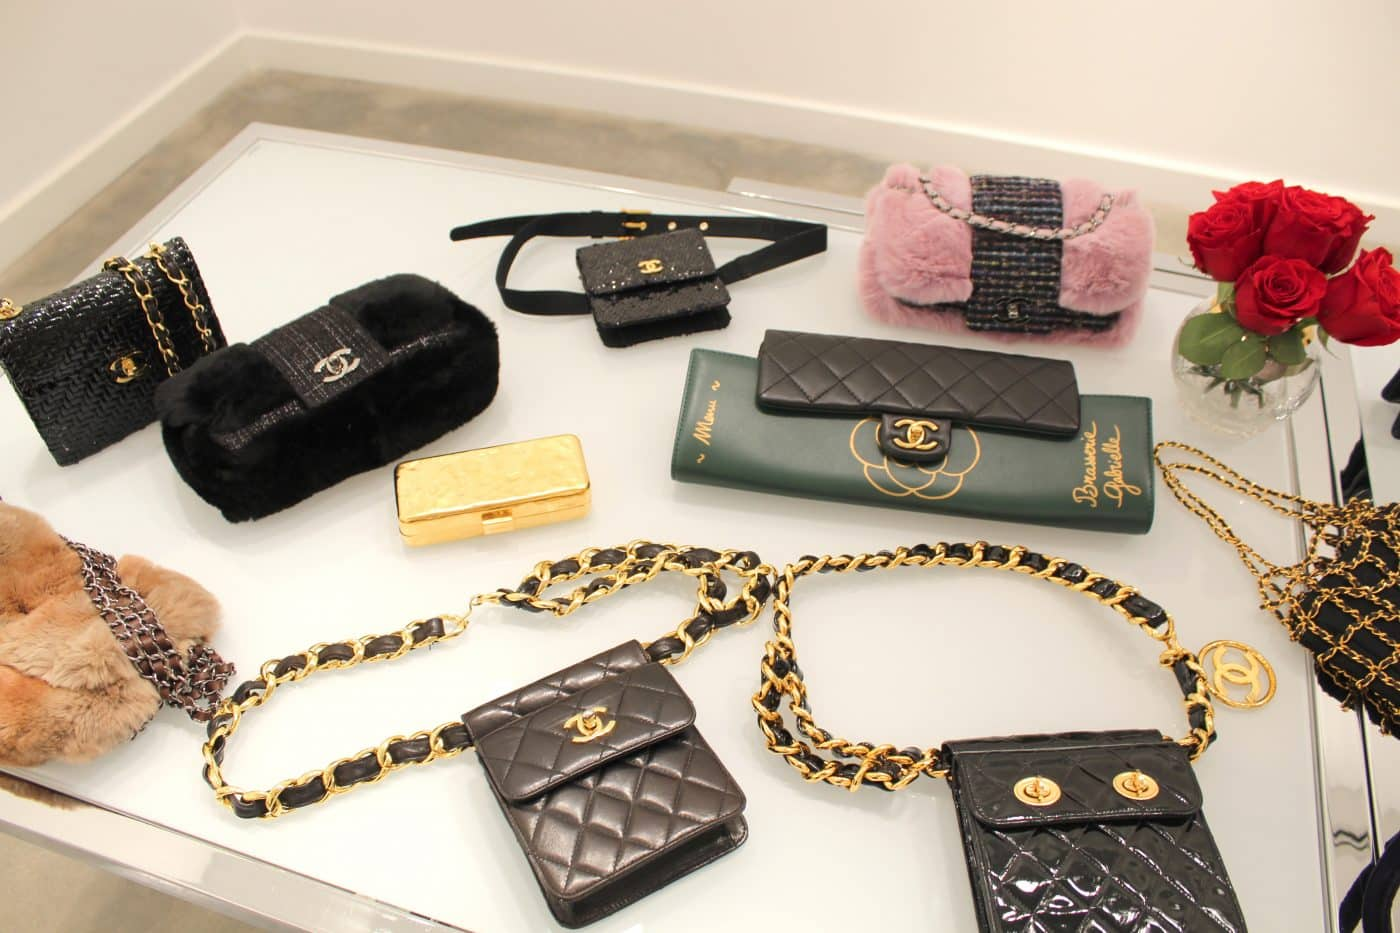 An assortment of small Chanel handbags, belt bags and clutches in a variety of materials and embellishments, offered by House of Carver